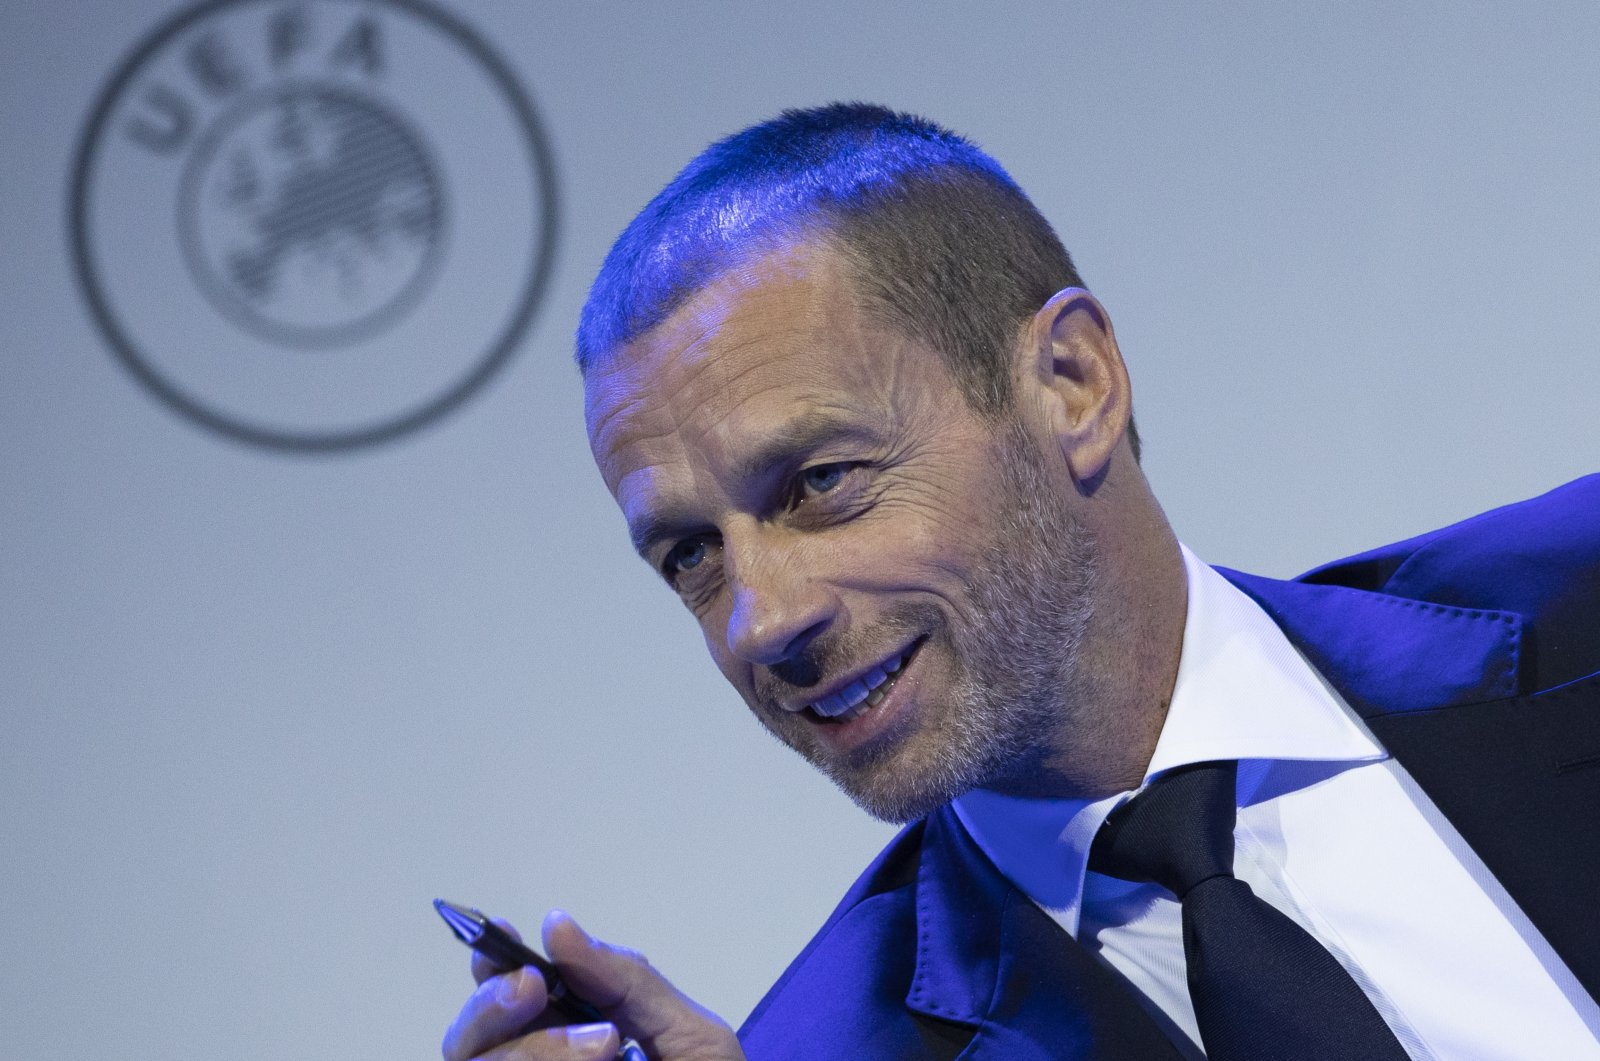 UEFA President Aleksander Ceferin speaks at a meeting of European football leaders at the congress of the UEFA governing body, Amsterdam's Beurs van Berlage, Netherlands, March 3, 2020. (AP Photo)